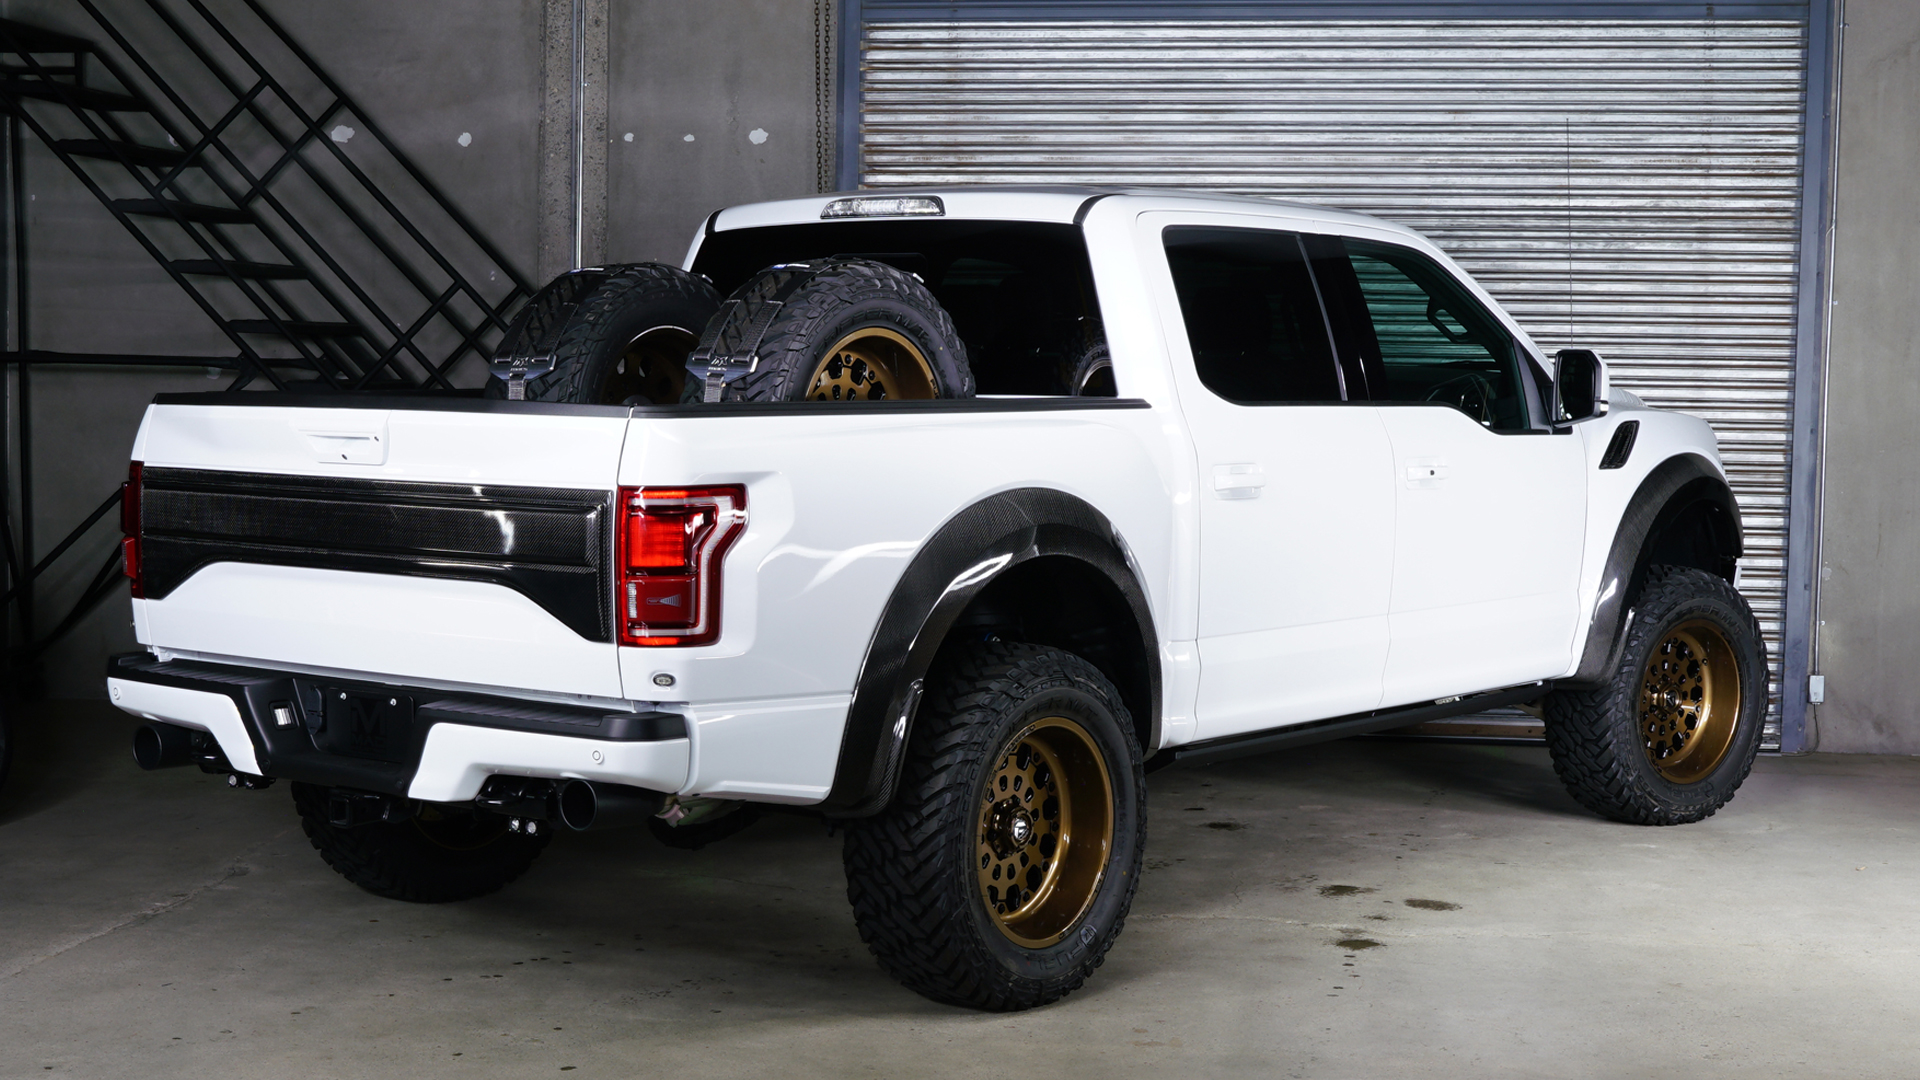 2017 Ford F150 Lifted >> MAD RAPTOR Custom Build - Limited Edition Ford F150 Raptor